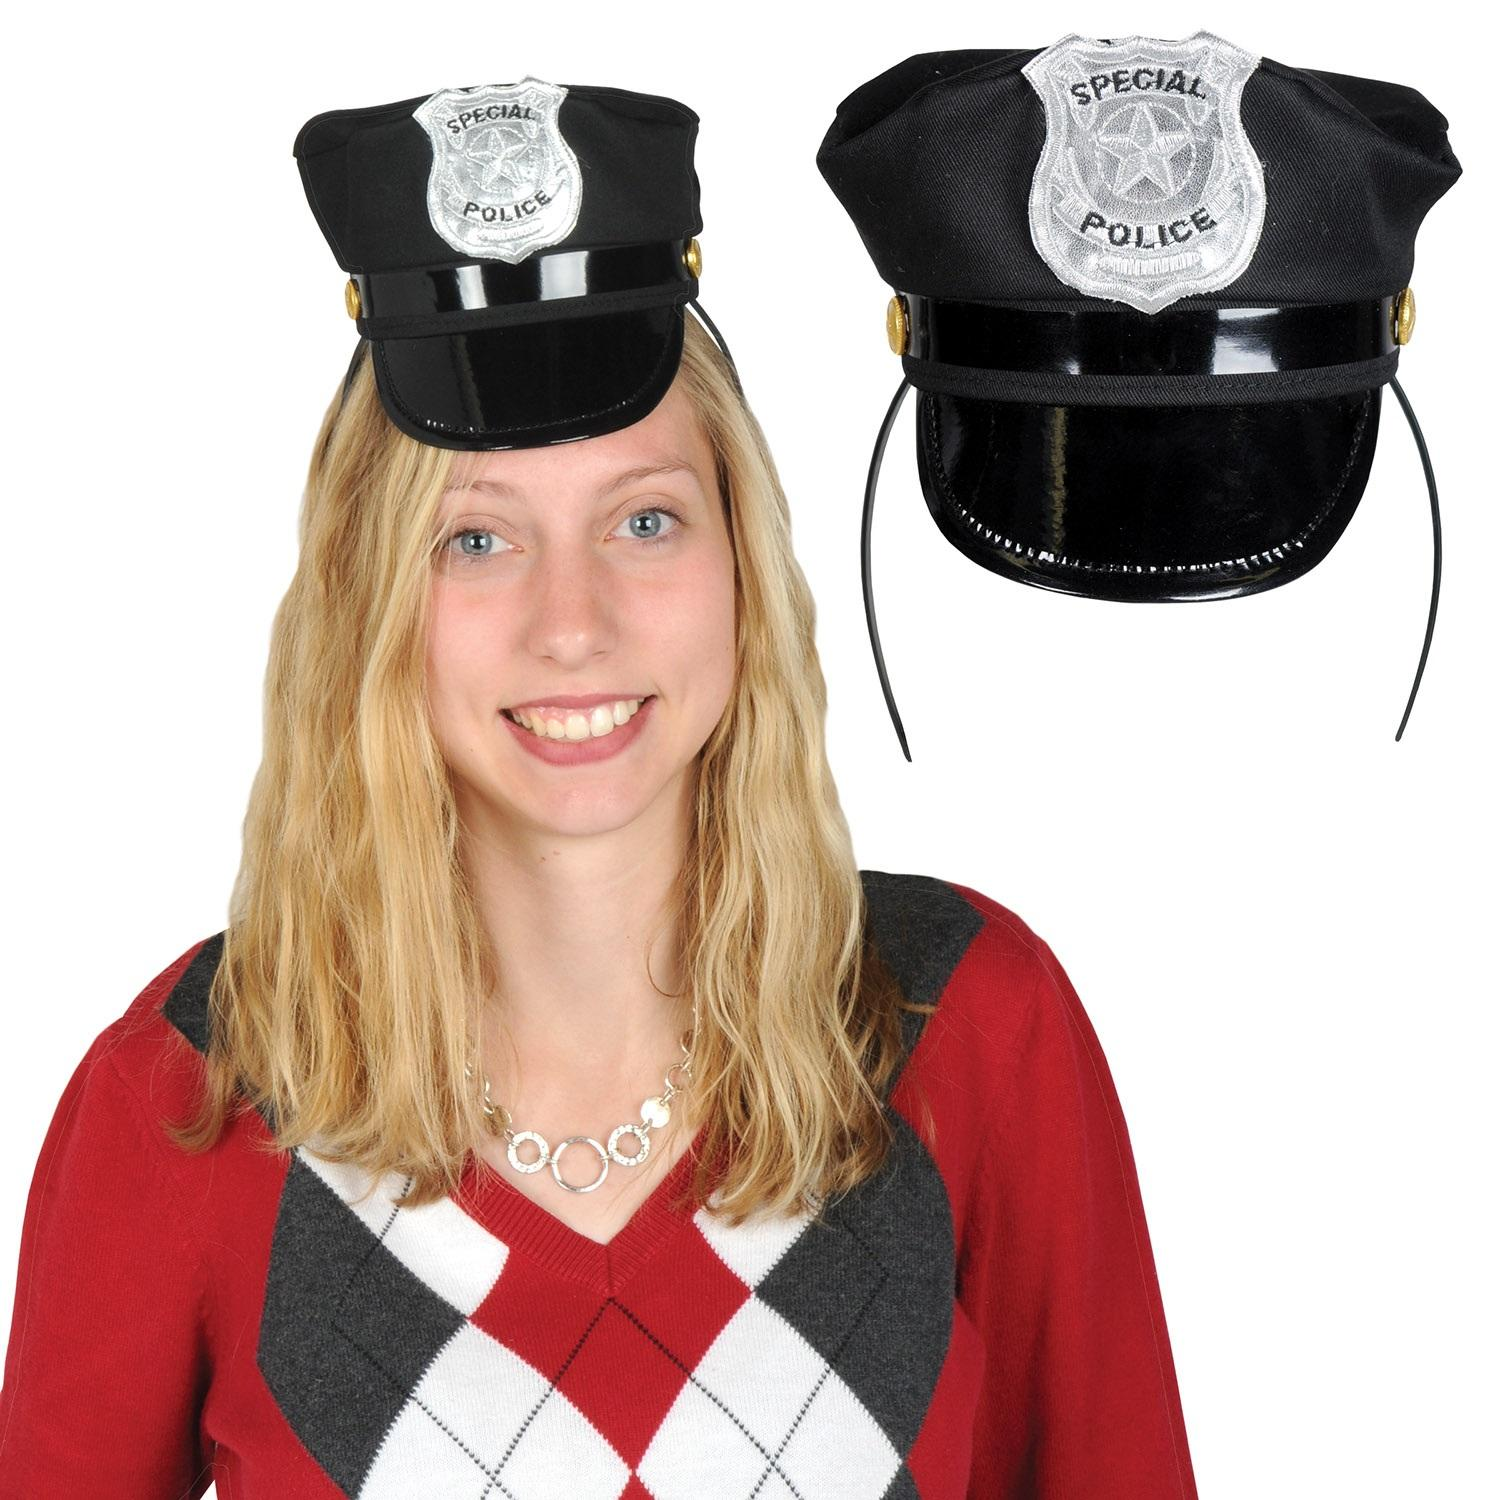 Club Pack of 12 Black and Silver Snap-on Police Hat Headband Costume 4""